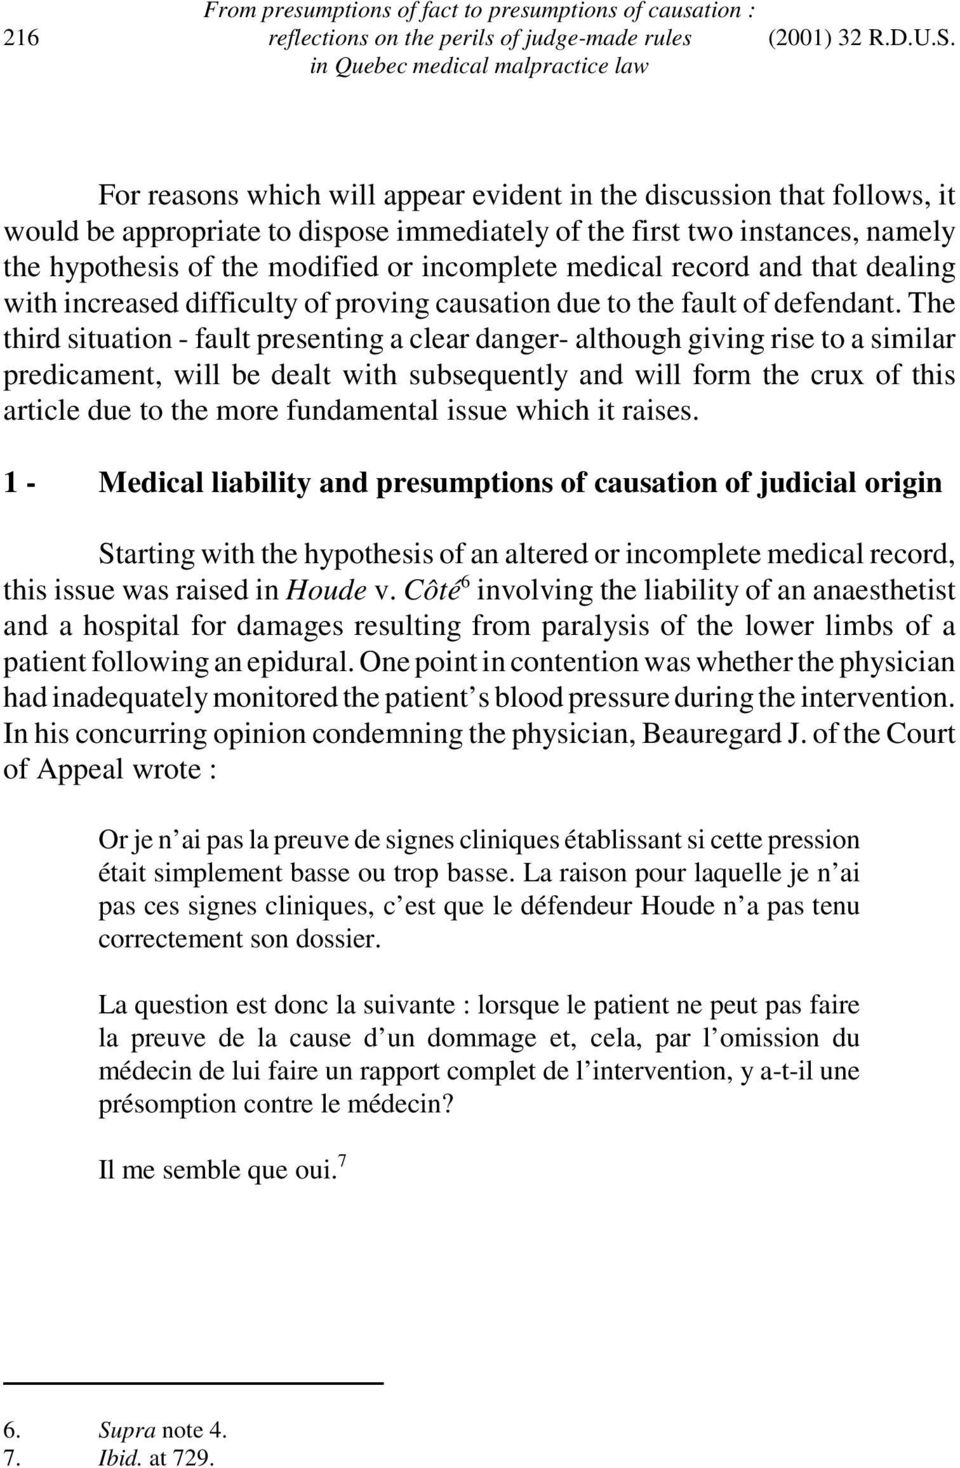 medical record and that dealing with increased difficulty of proving causation due to the fault of defendant.